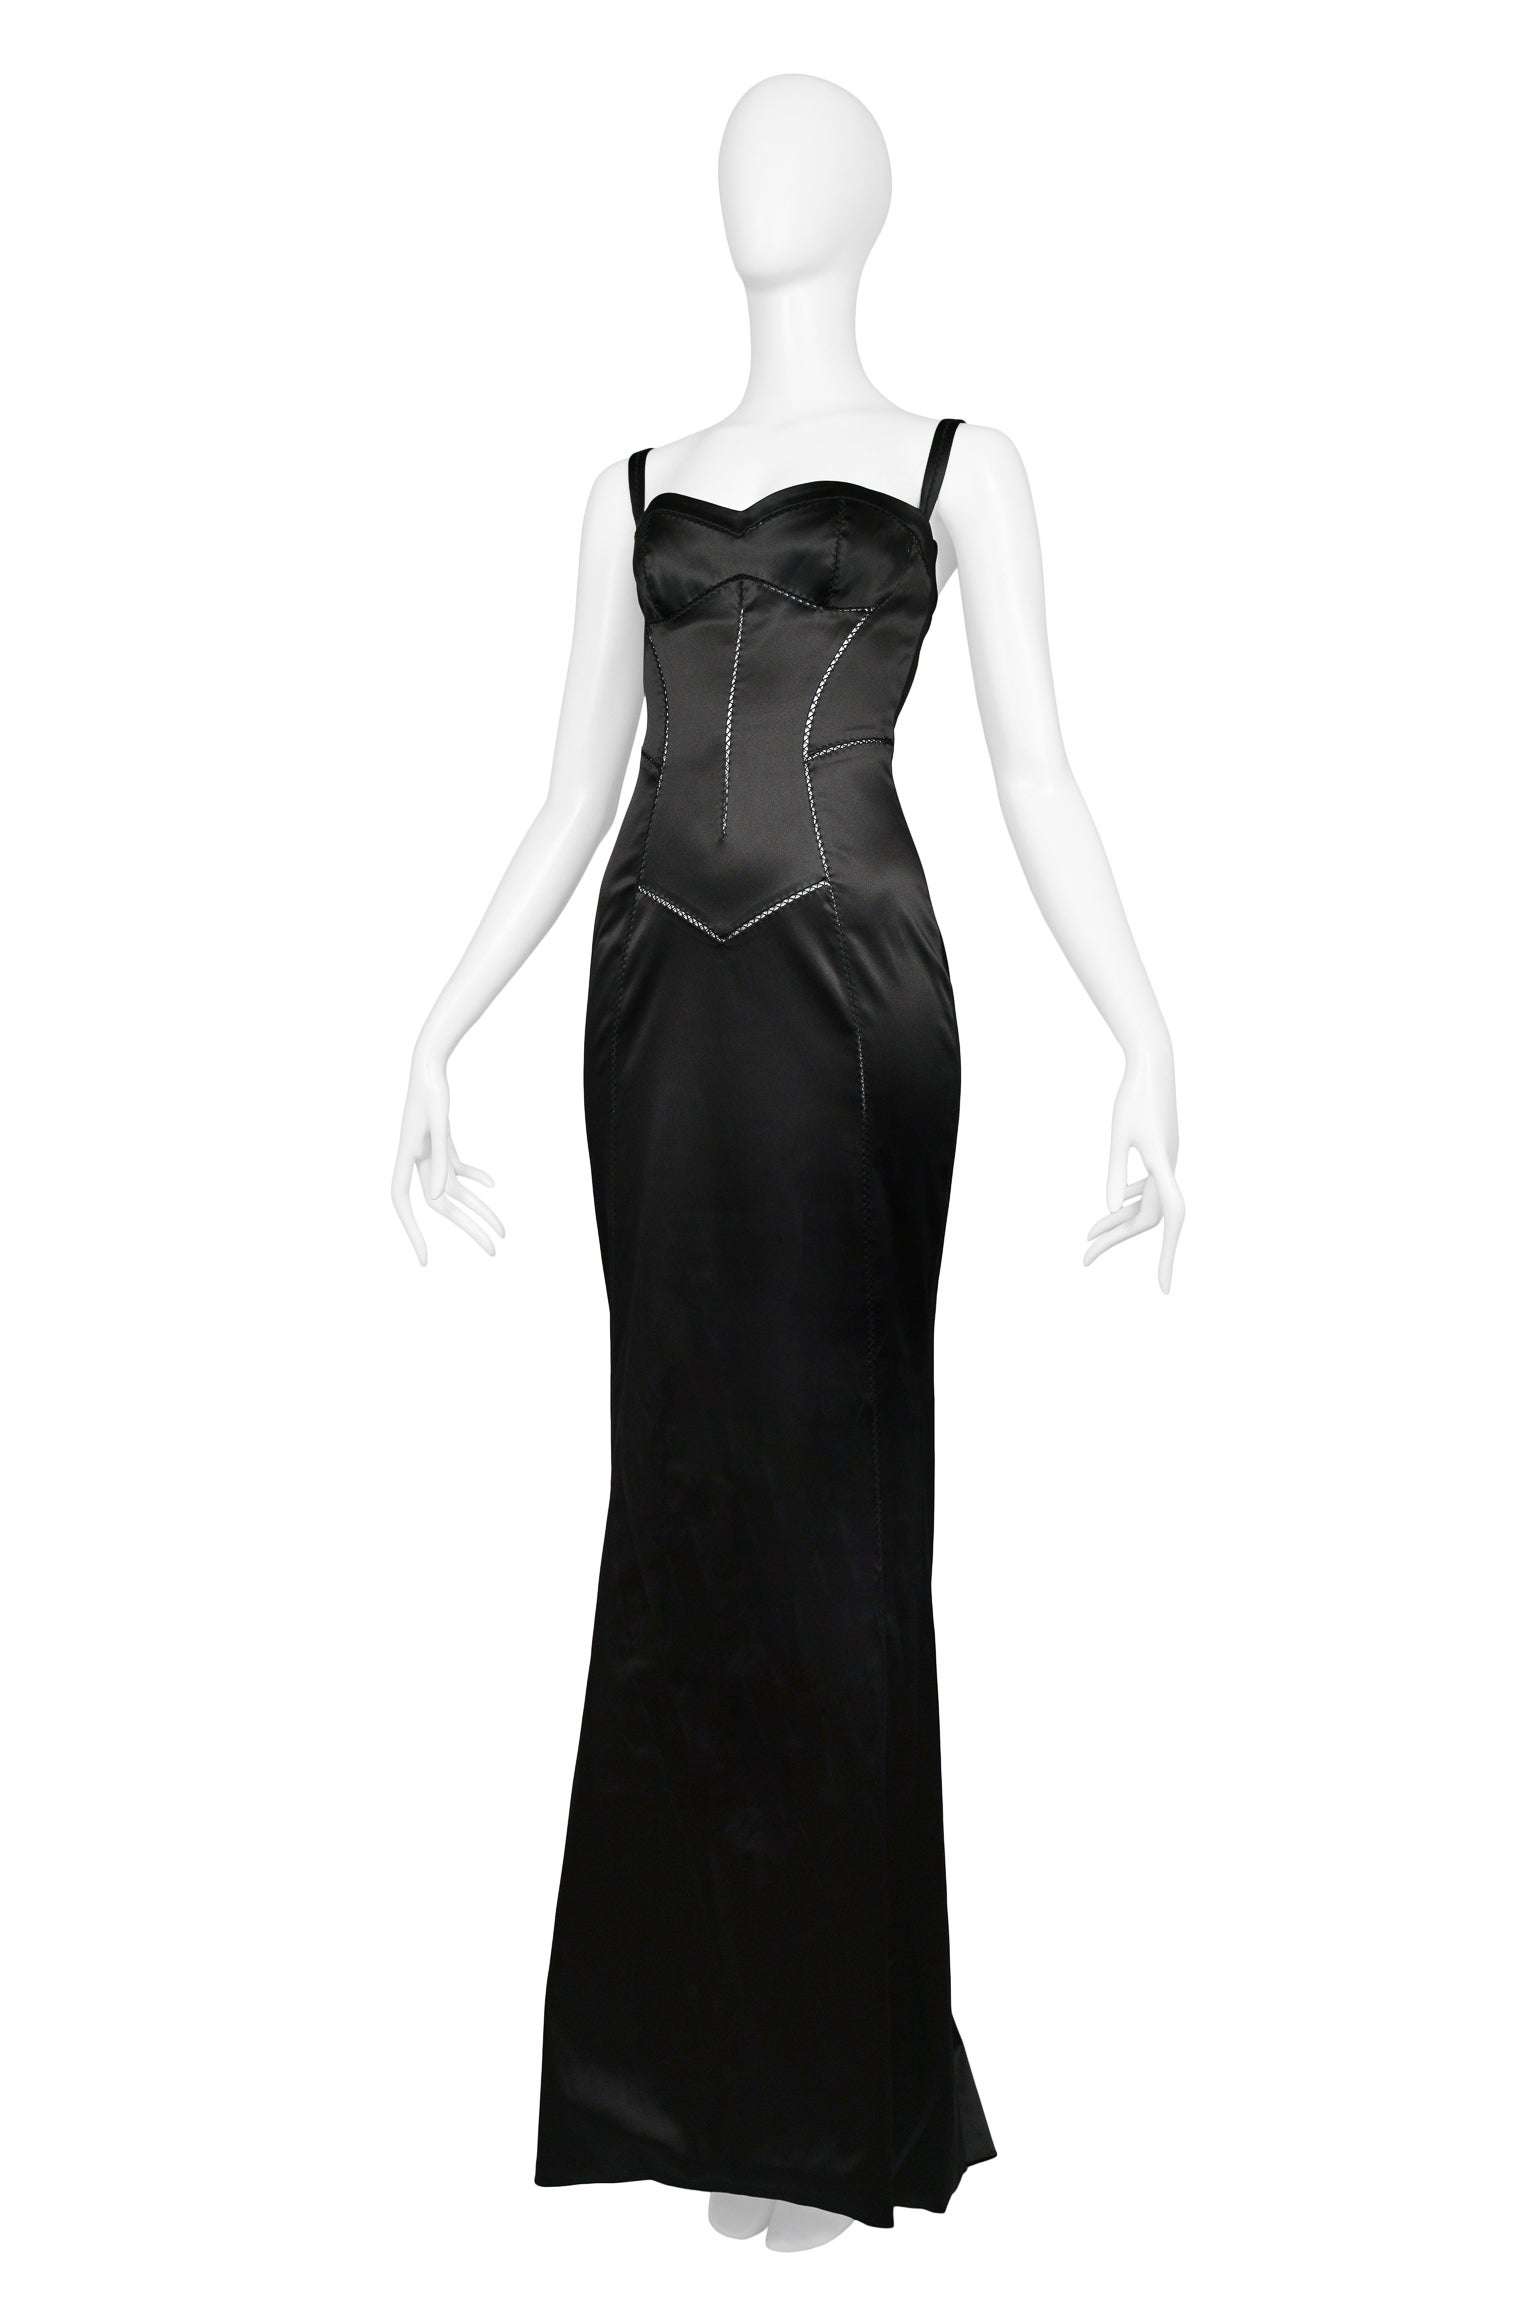 Dolce and Gabbana Black Satin Bustier Evening Gown with Train Hem at ...